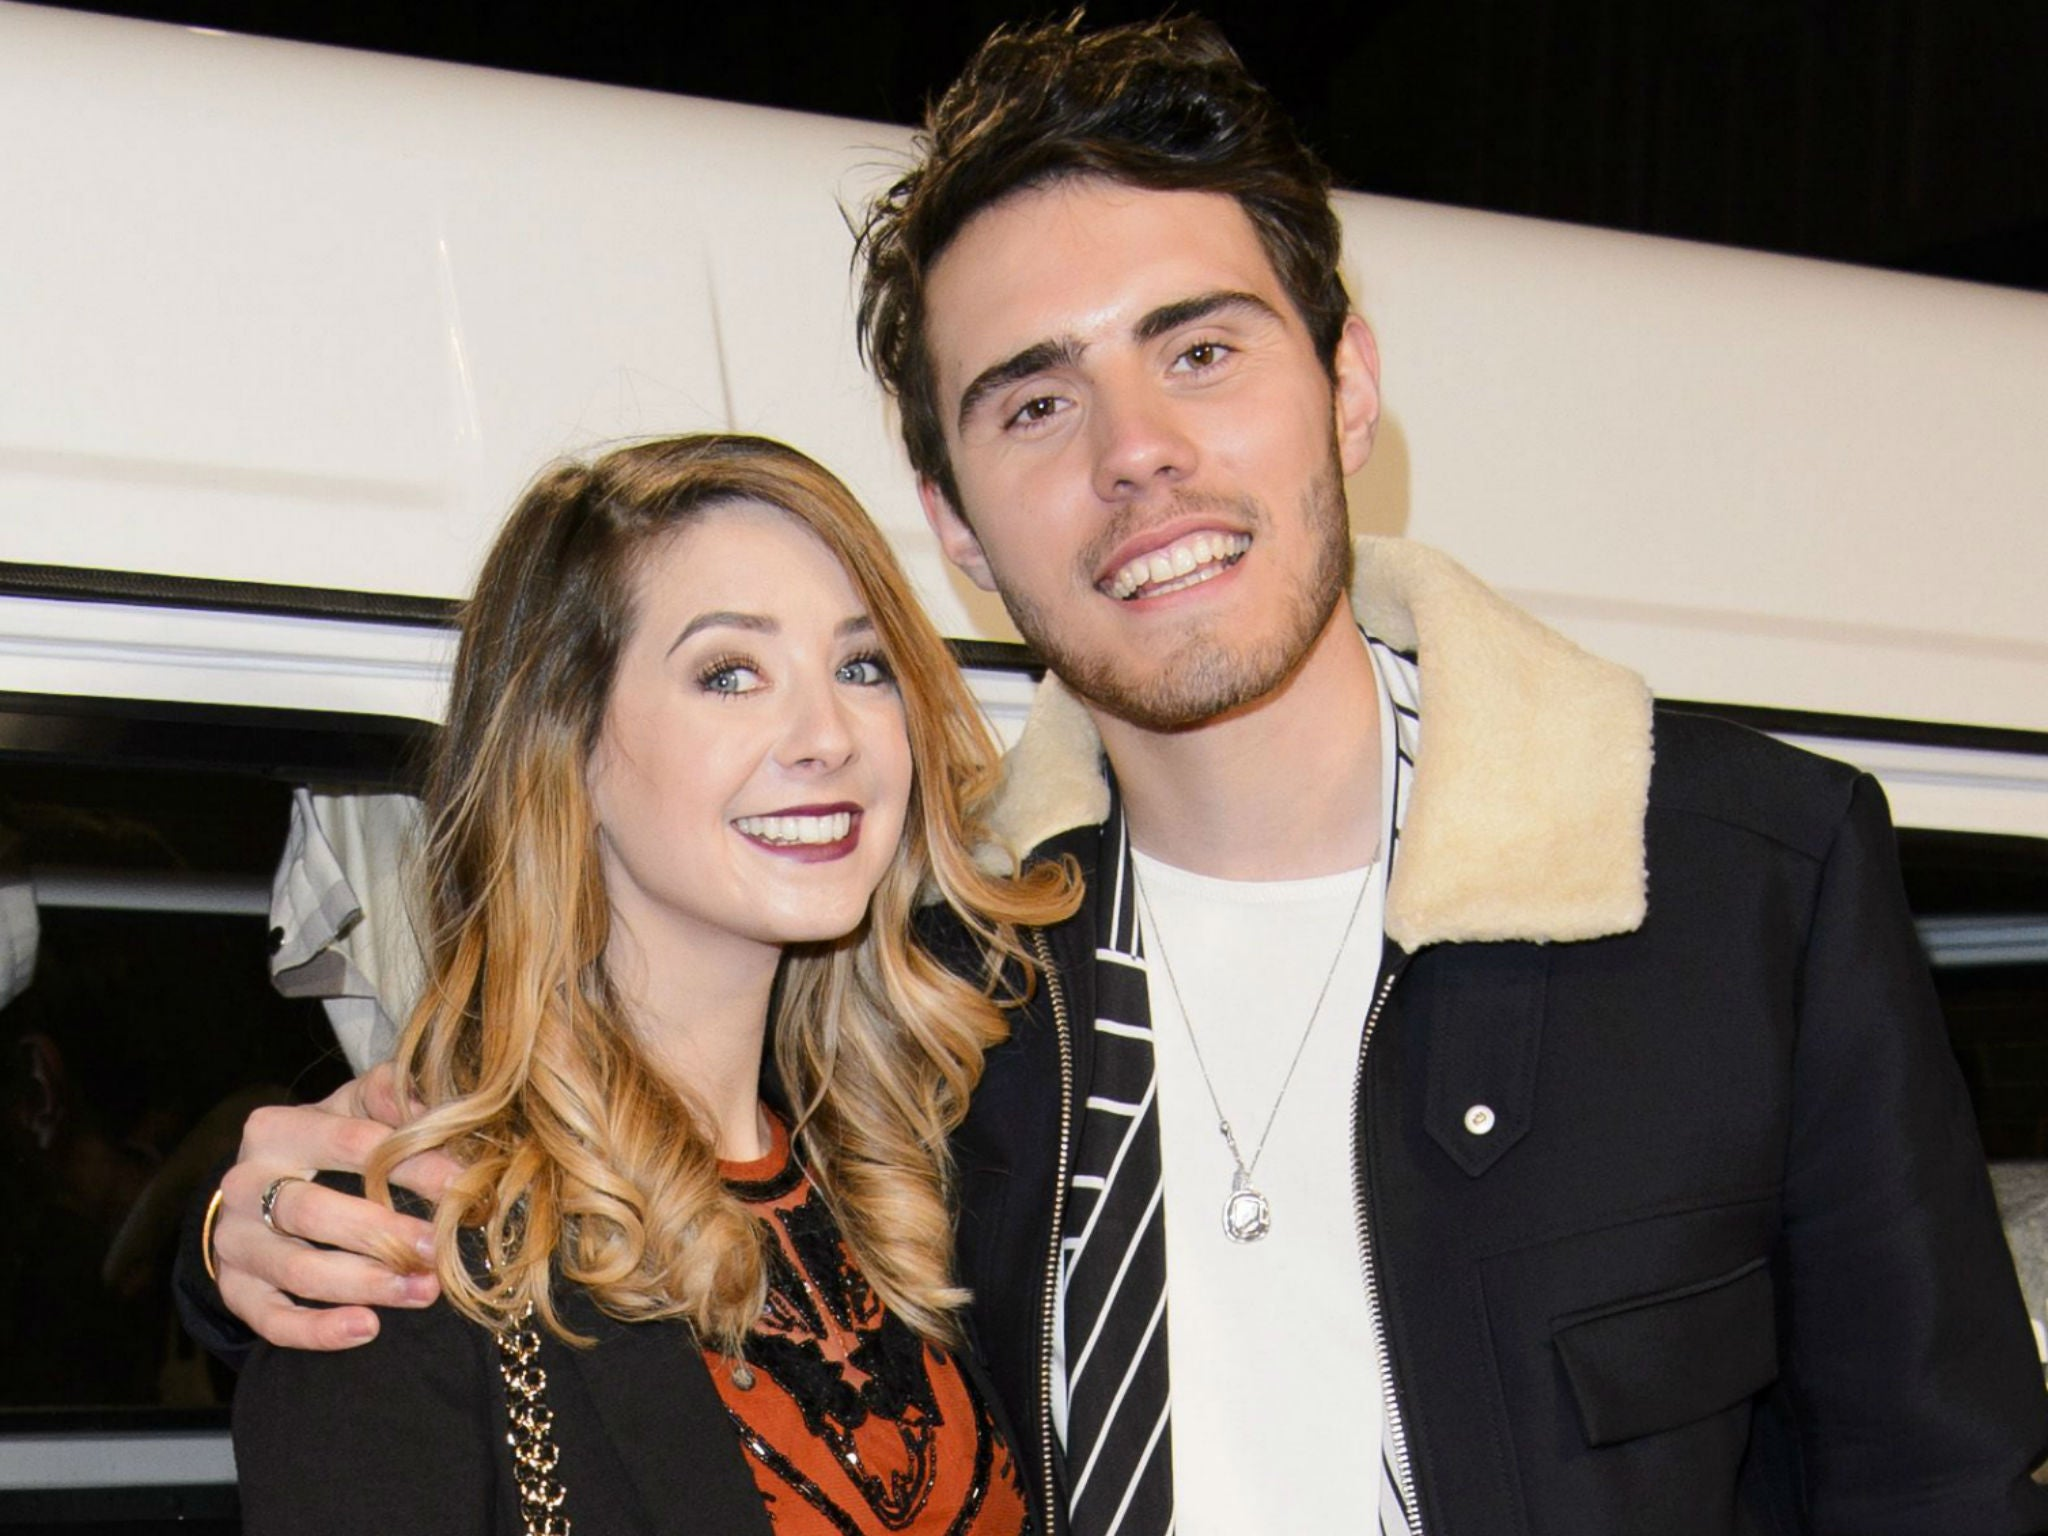 did alfie and zoella dating Youtube star zoella takes a break from the internet following ghostwriting row her boyfriend, alfie deyes, announced that he wouldn't be posting online for a few days either.